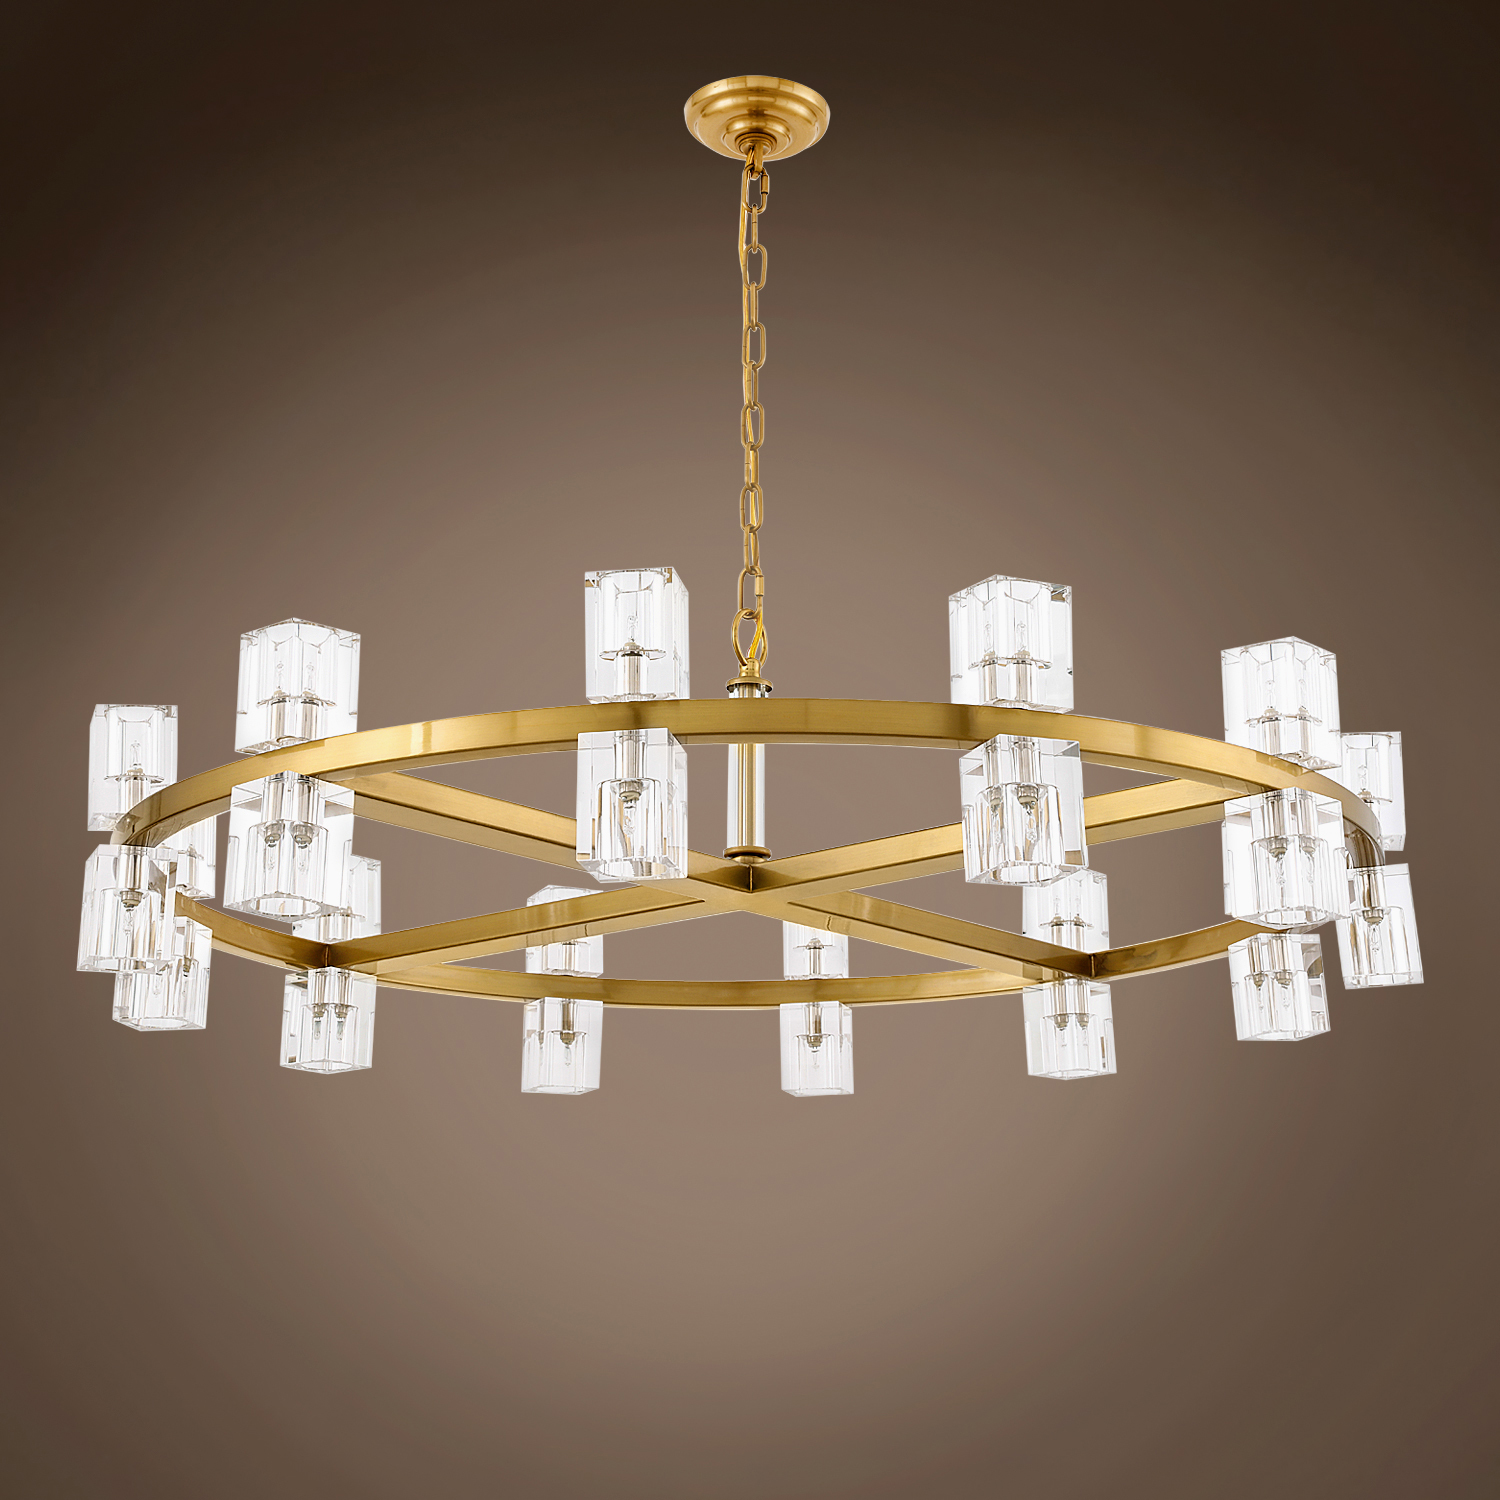 Gatsby Luminaires Crystal Wagon Wheel 20 Light 42 Round Chandelier 702162 From Crystal Wagon Wheel Collection